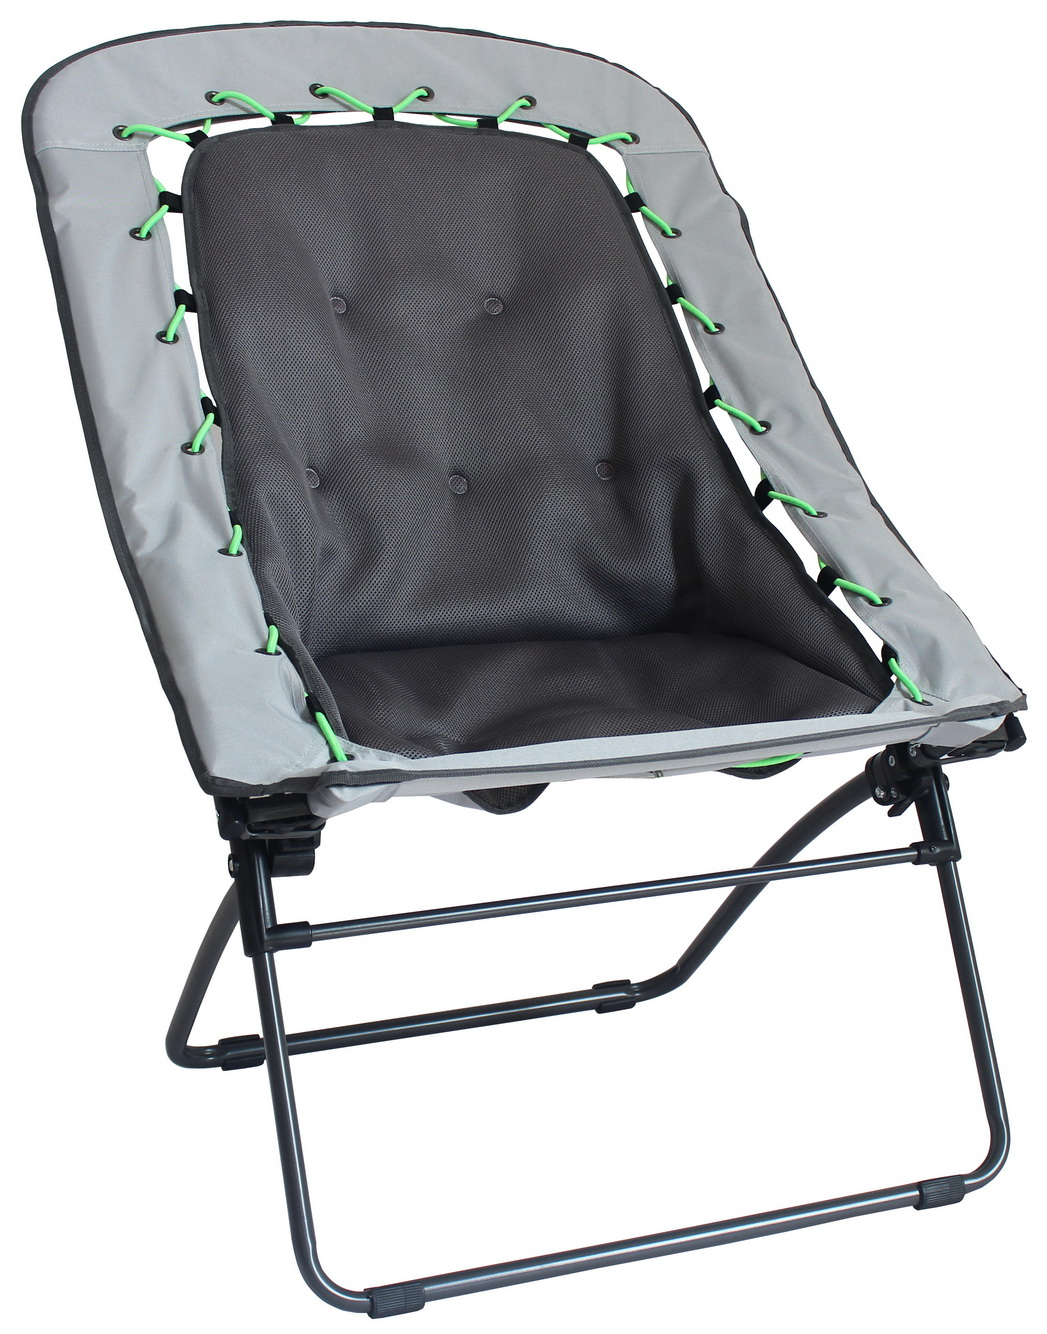 Bungi Chair Northwest Territory Oversize Bungee Chair